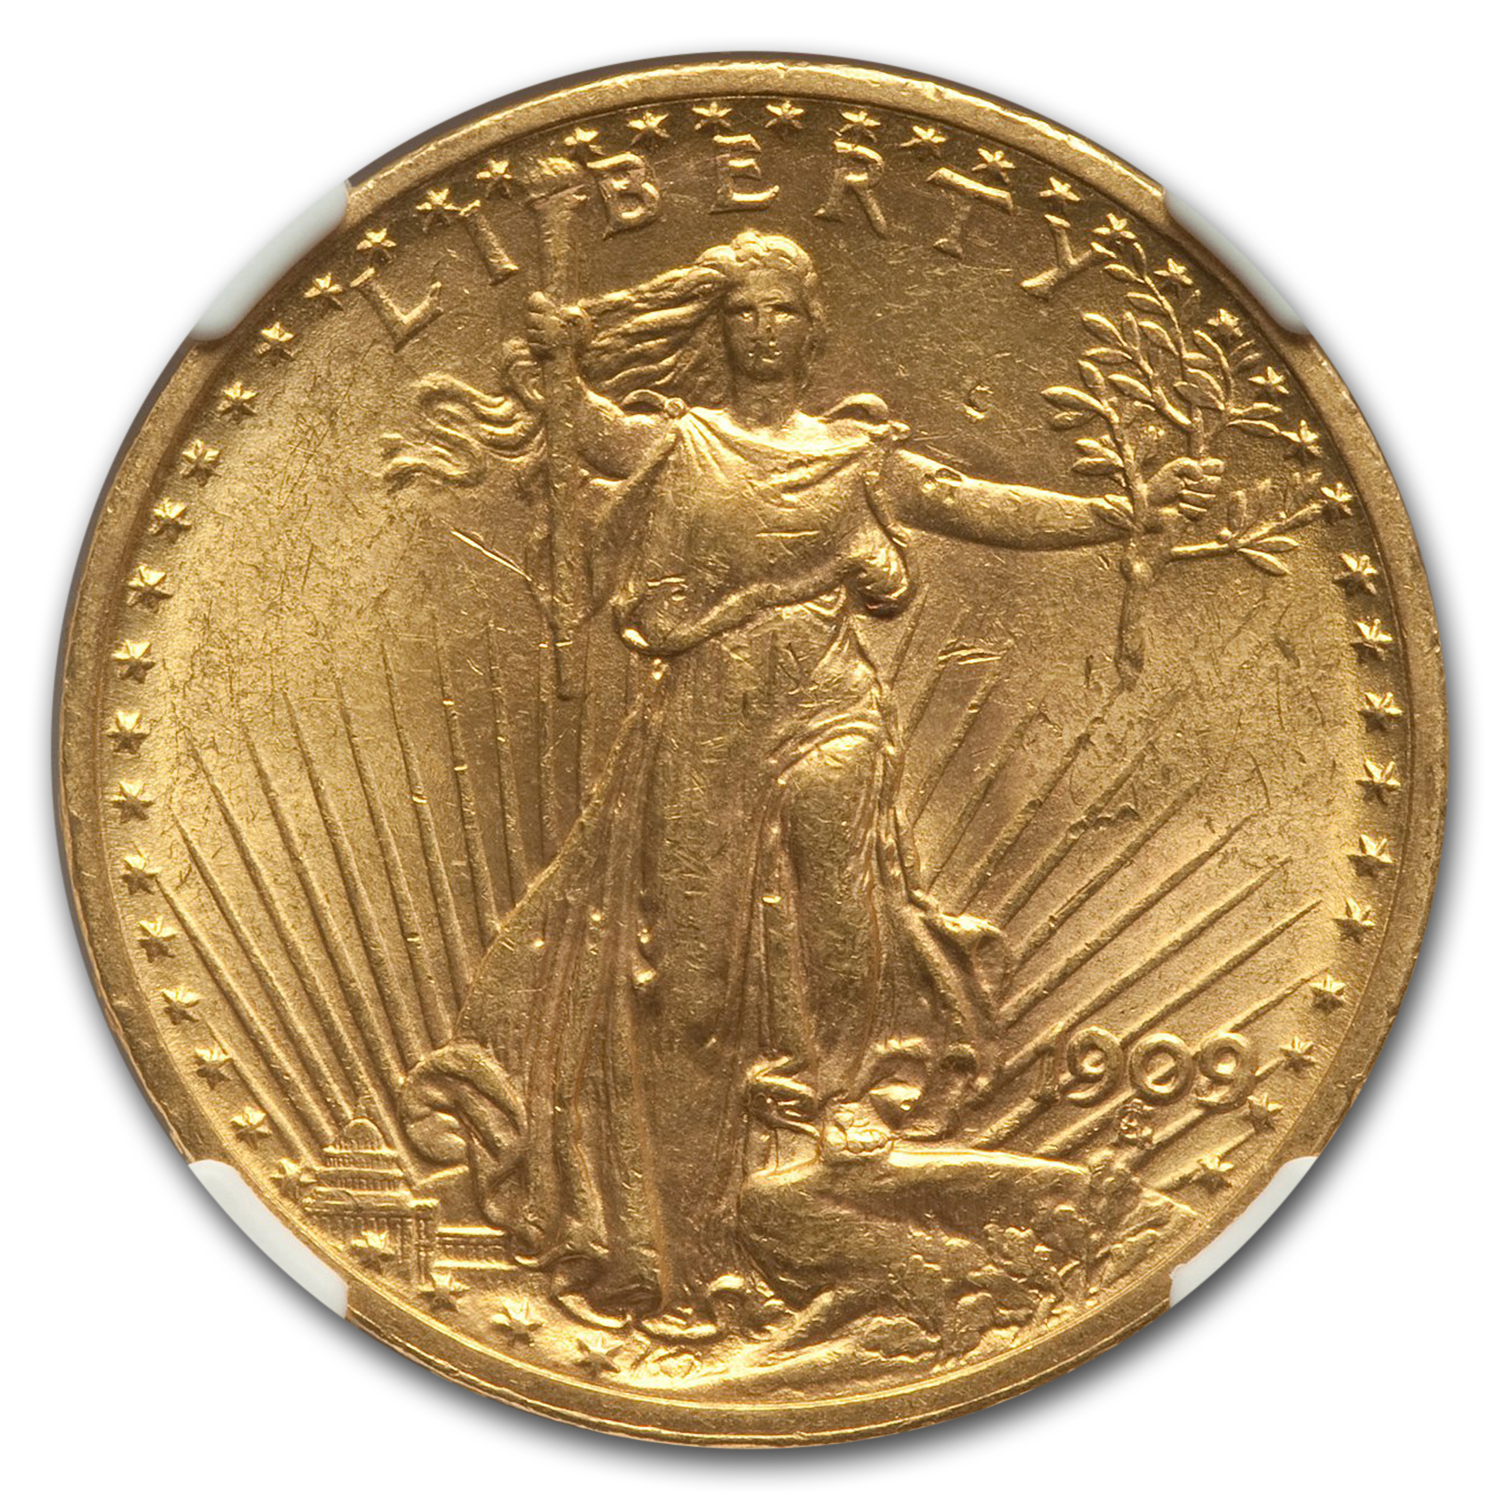 1909/8 $20 Saint-Gaudens Gold Double Eagle Overdate MS-61 NGC